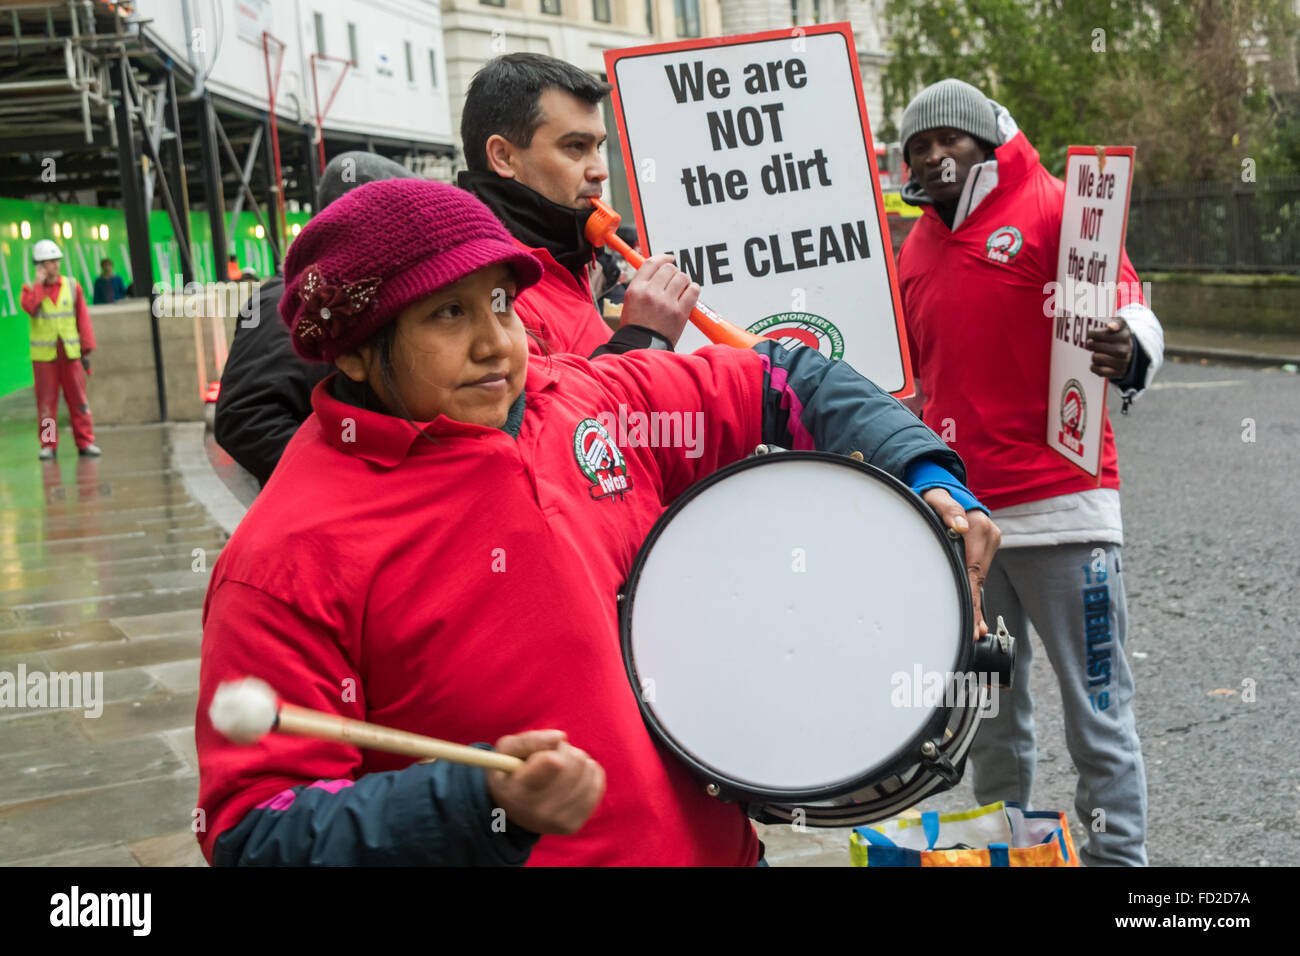 London, UK. 27th January, 2016. Grass-roots union IWGB hold a noisy protest with drums and plastic horns outside - Stock Image